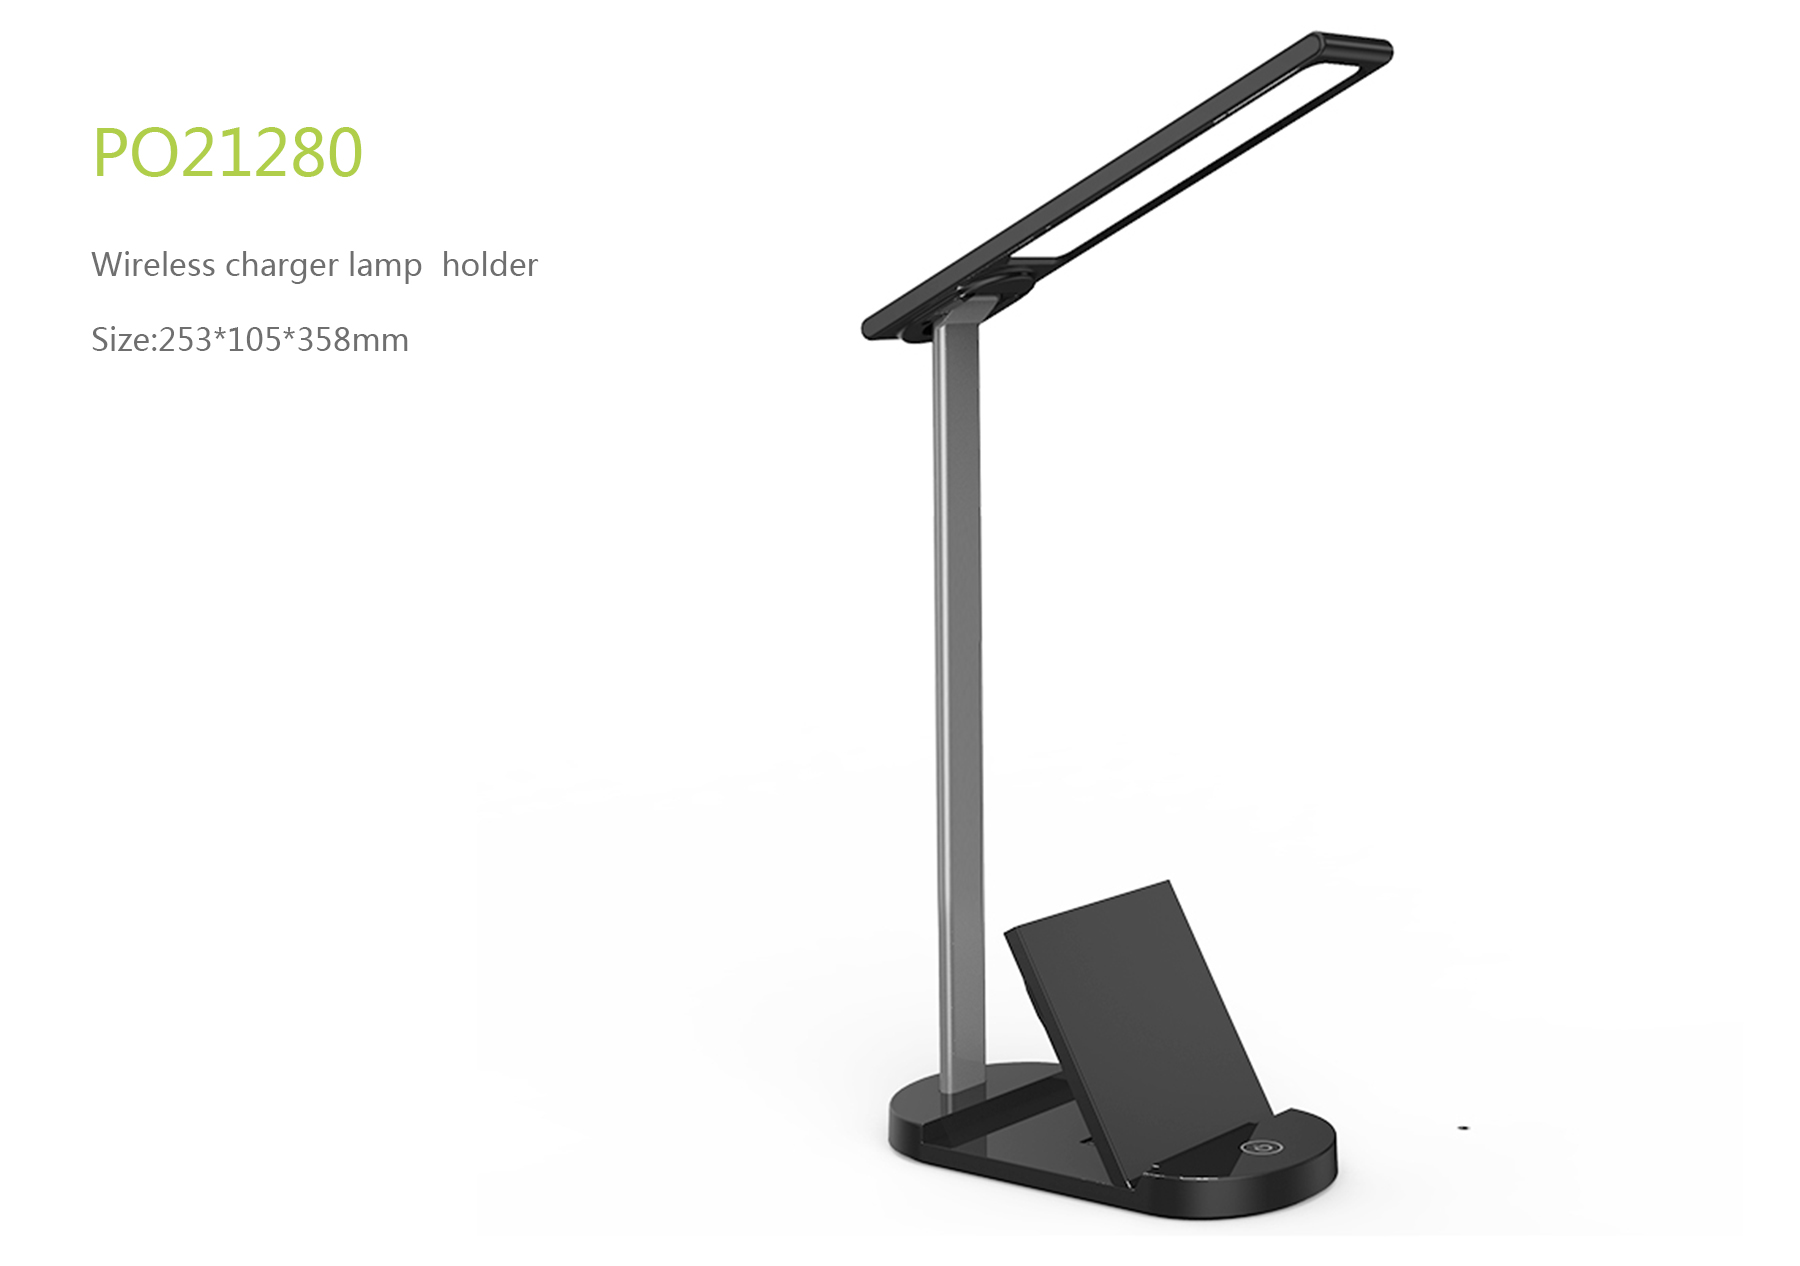 Wireless charger lamp holder